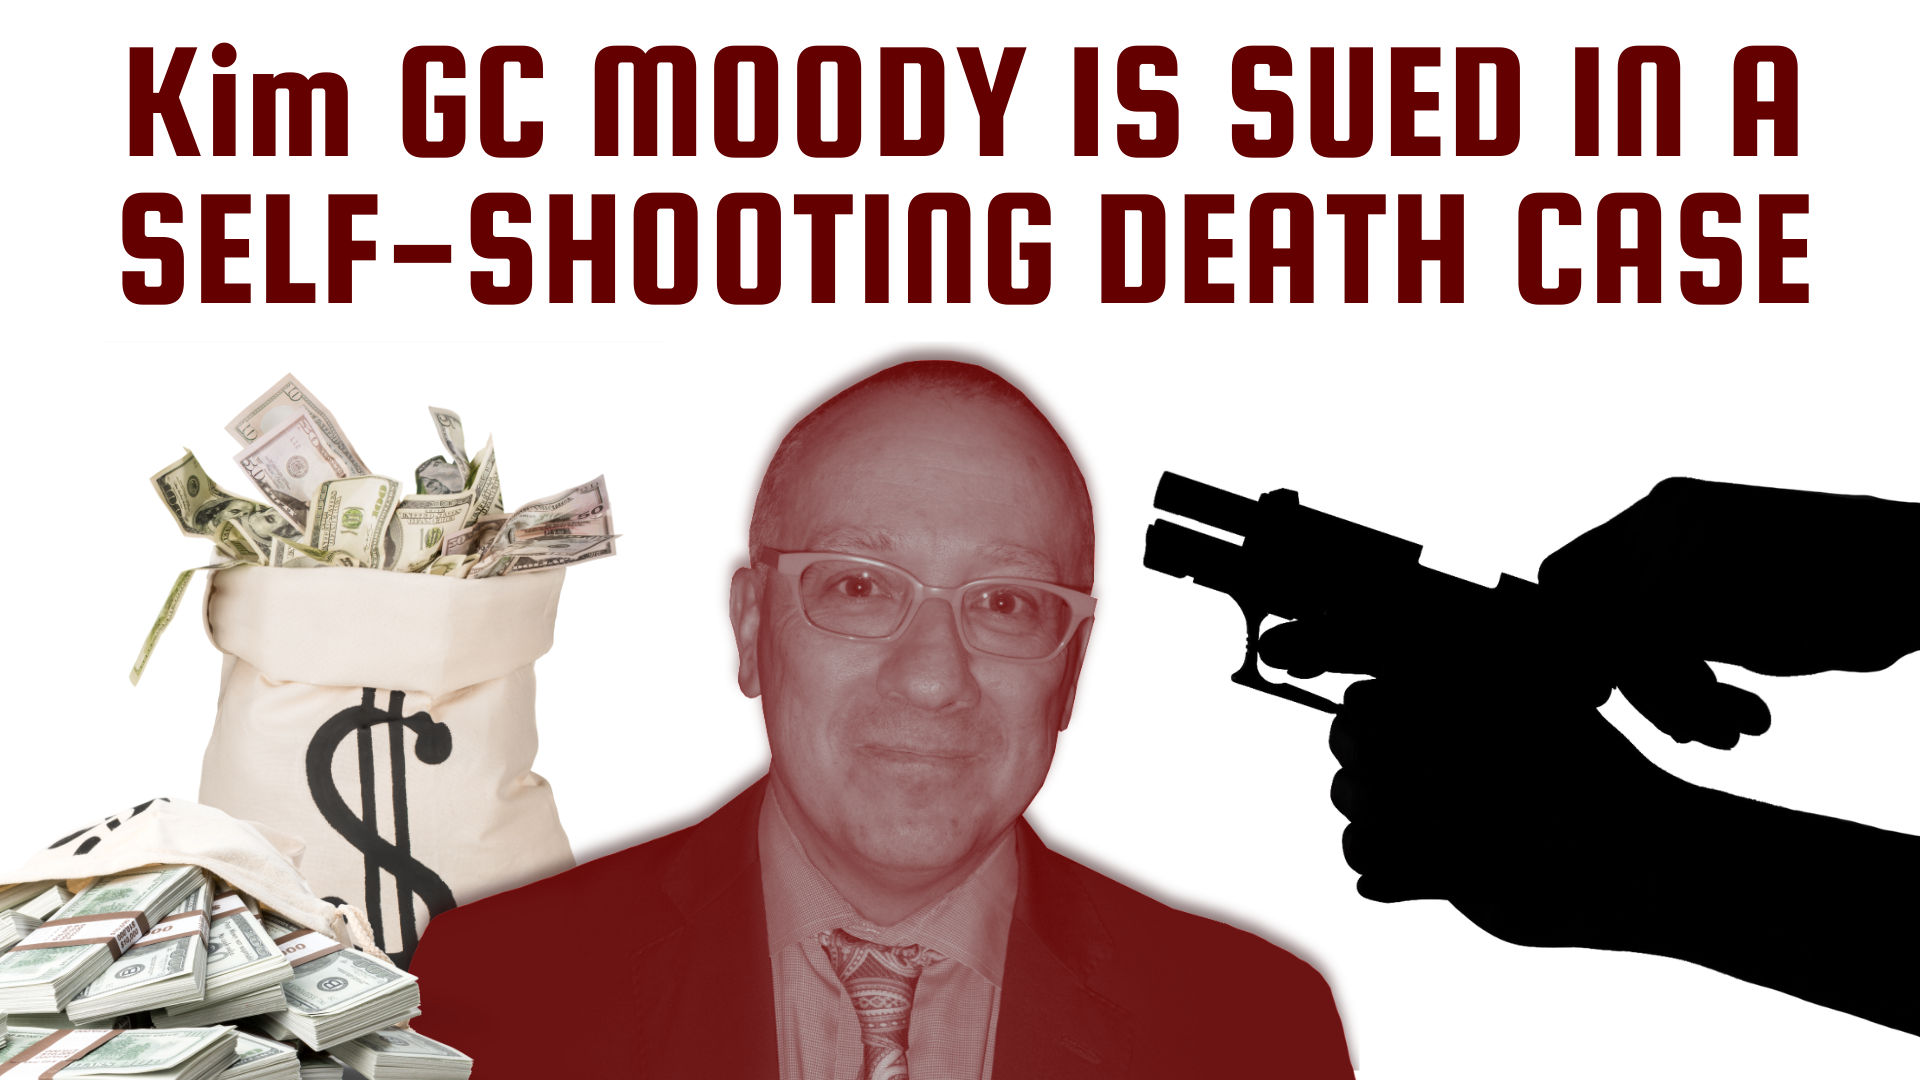 Kim GC Moody IS SUED IN A SELF-SHOOTING DEATH CASE